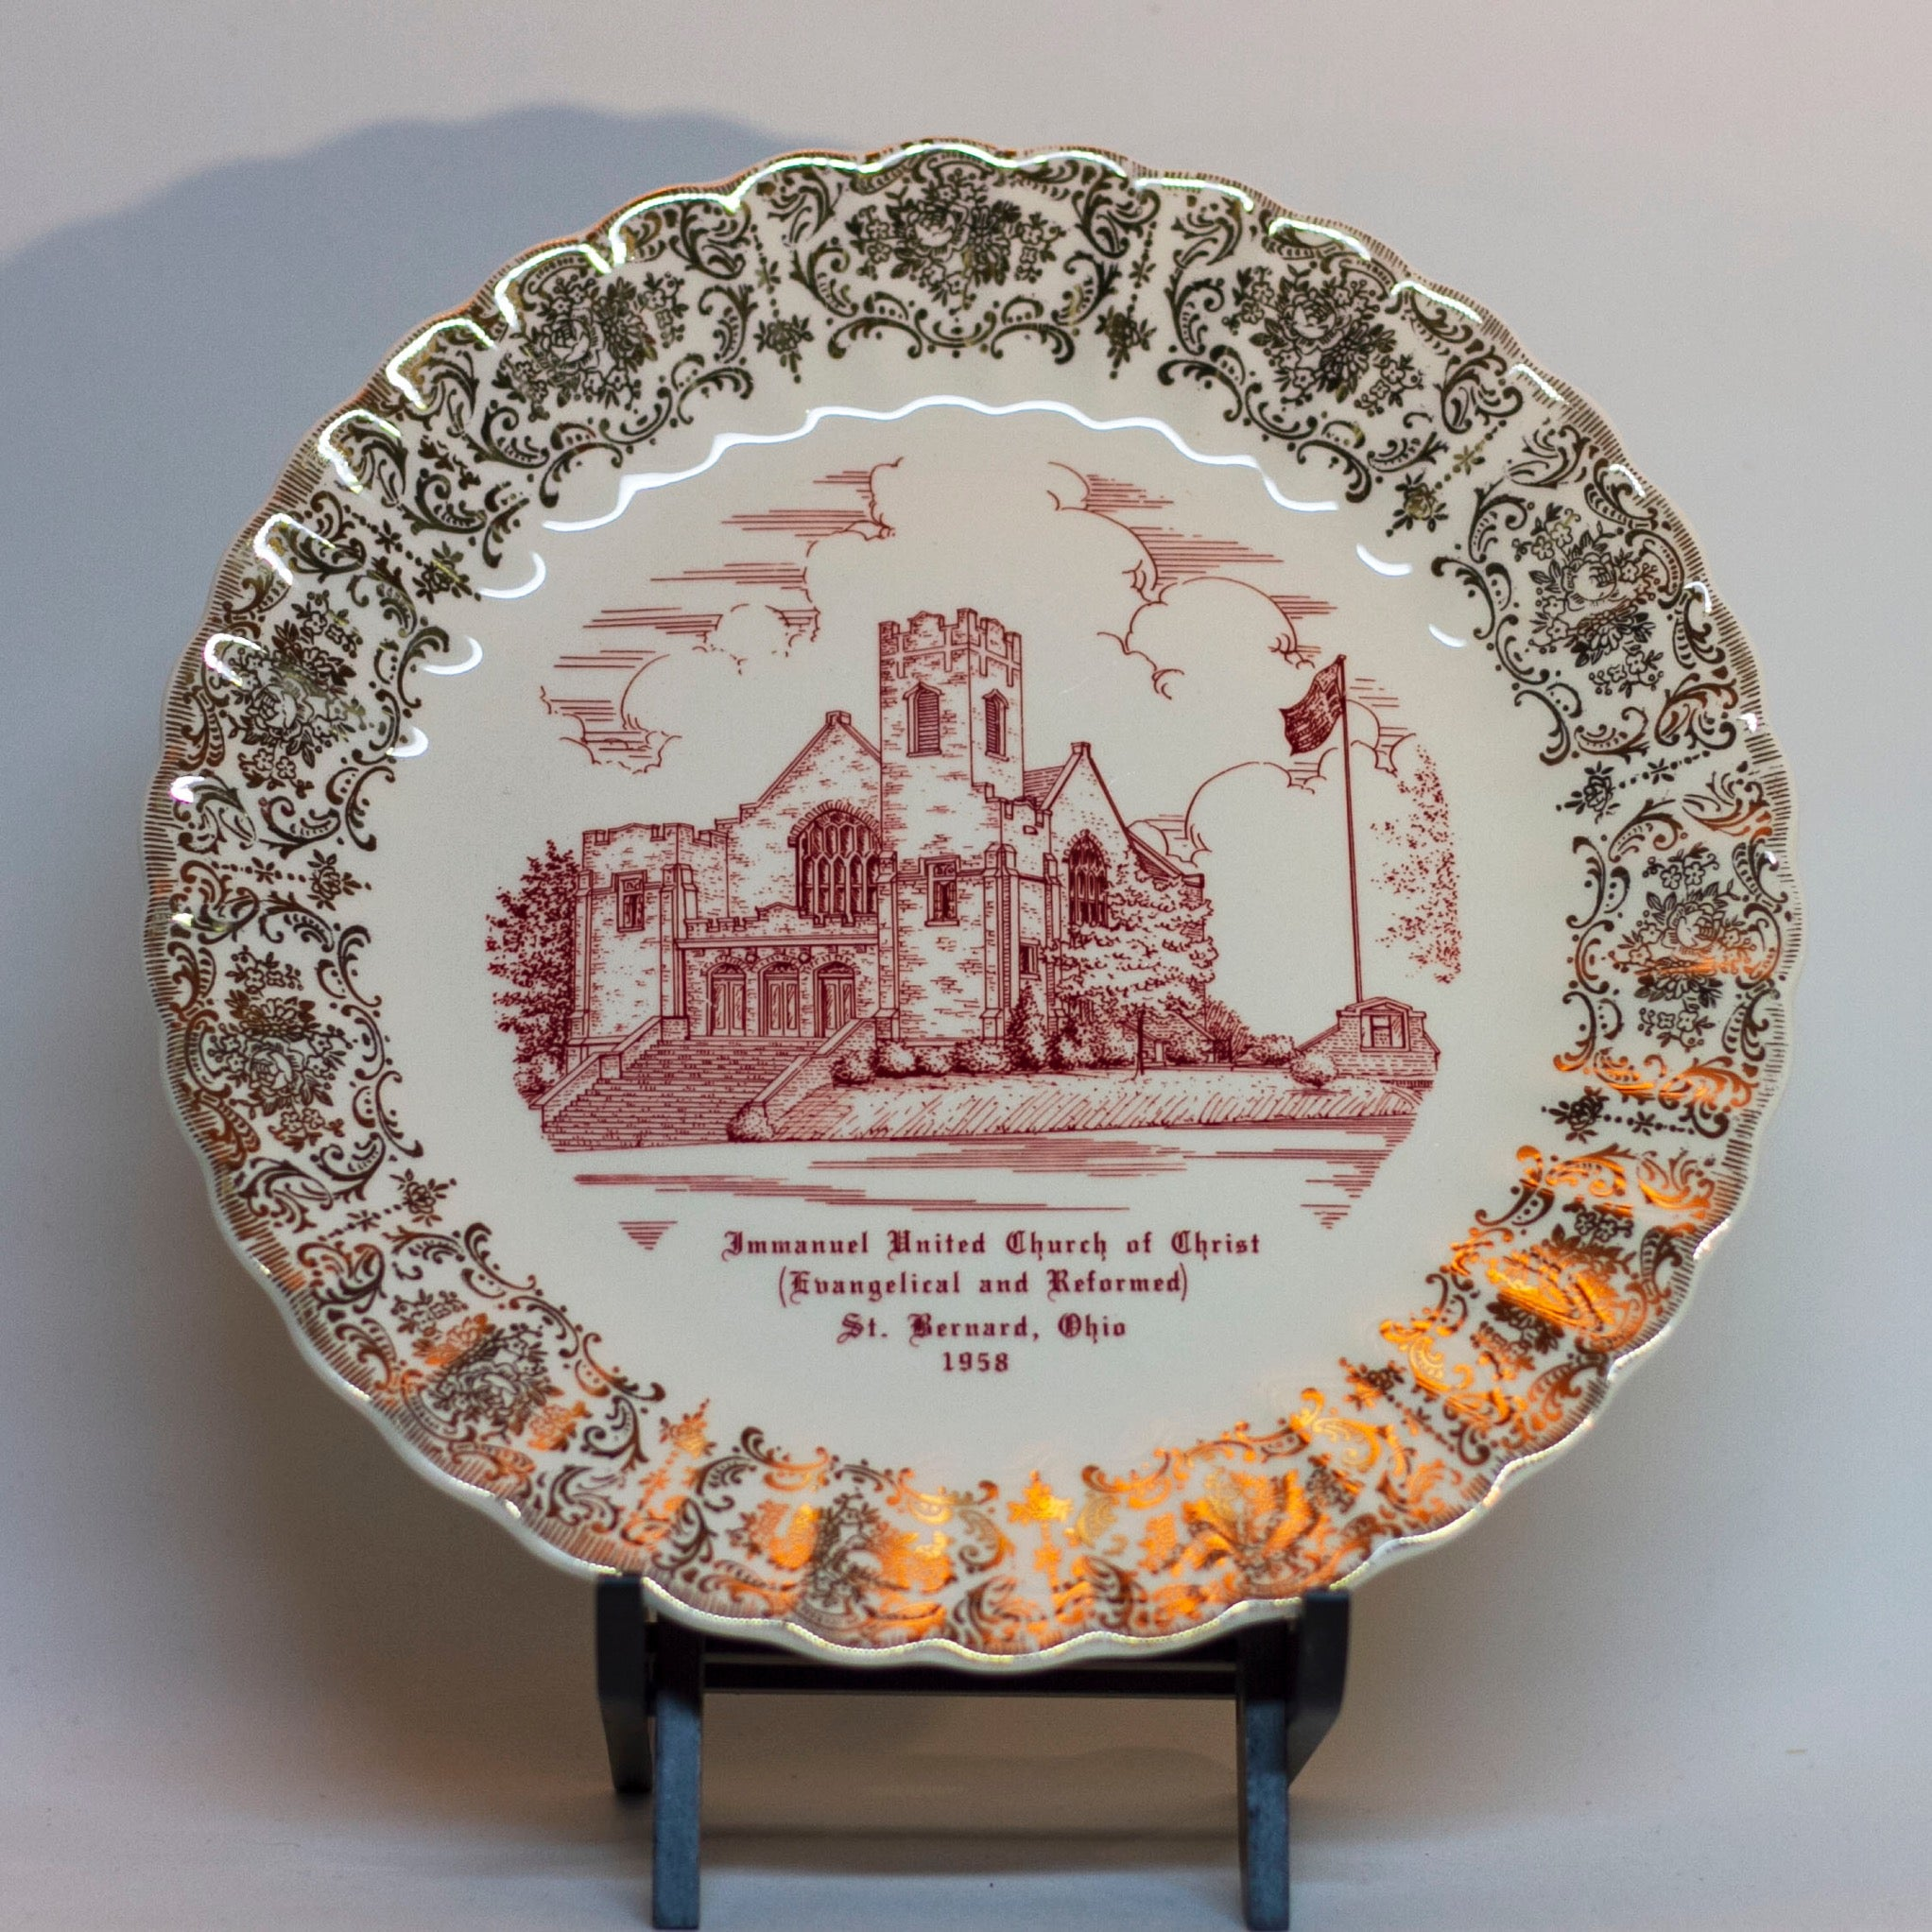 Vintage Decorative CHURCH PLATE Immanuel United Church of Christ St. Bernard Ohio 1958